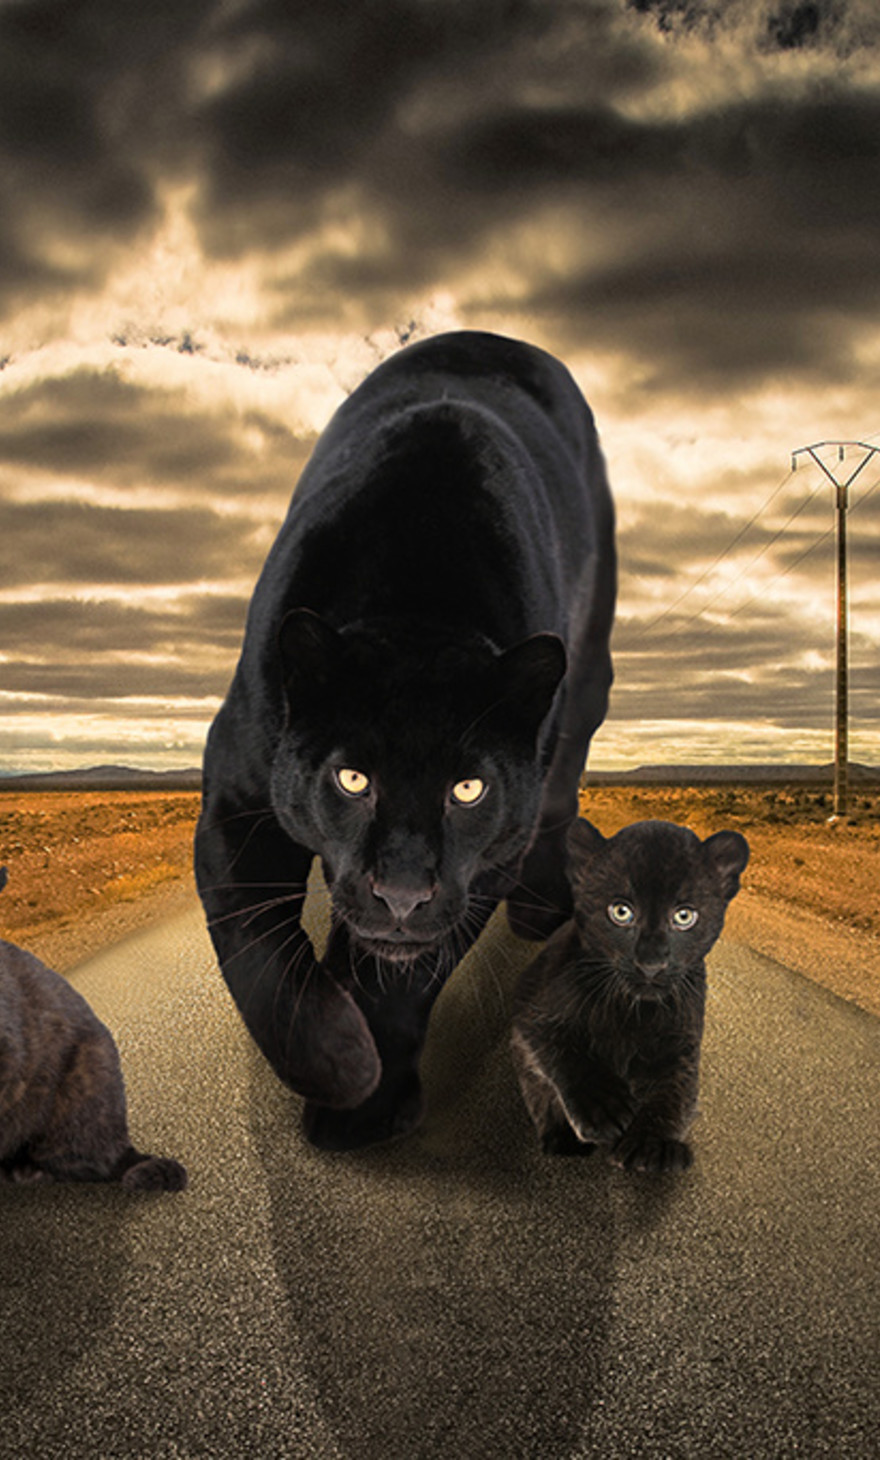 Panter on the road